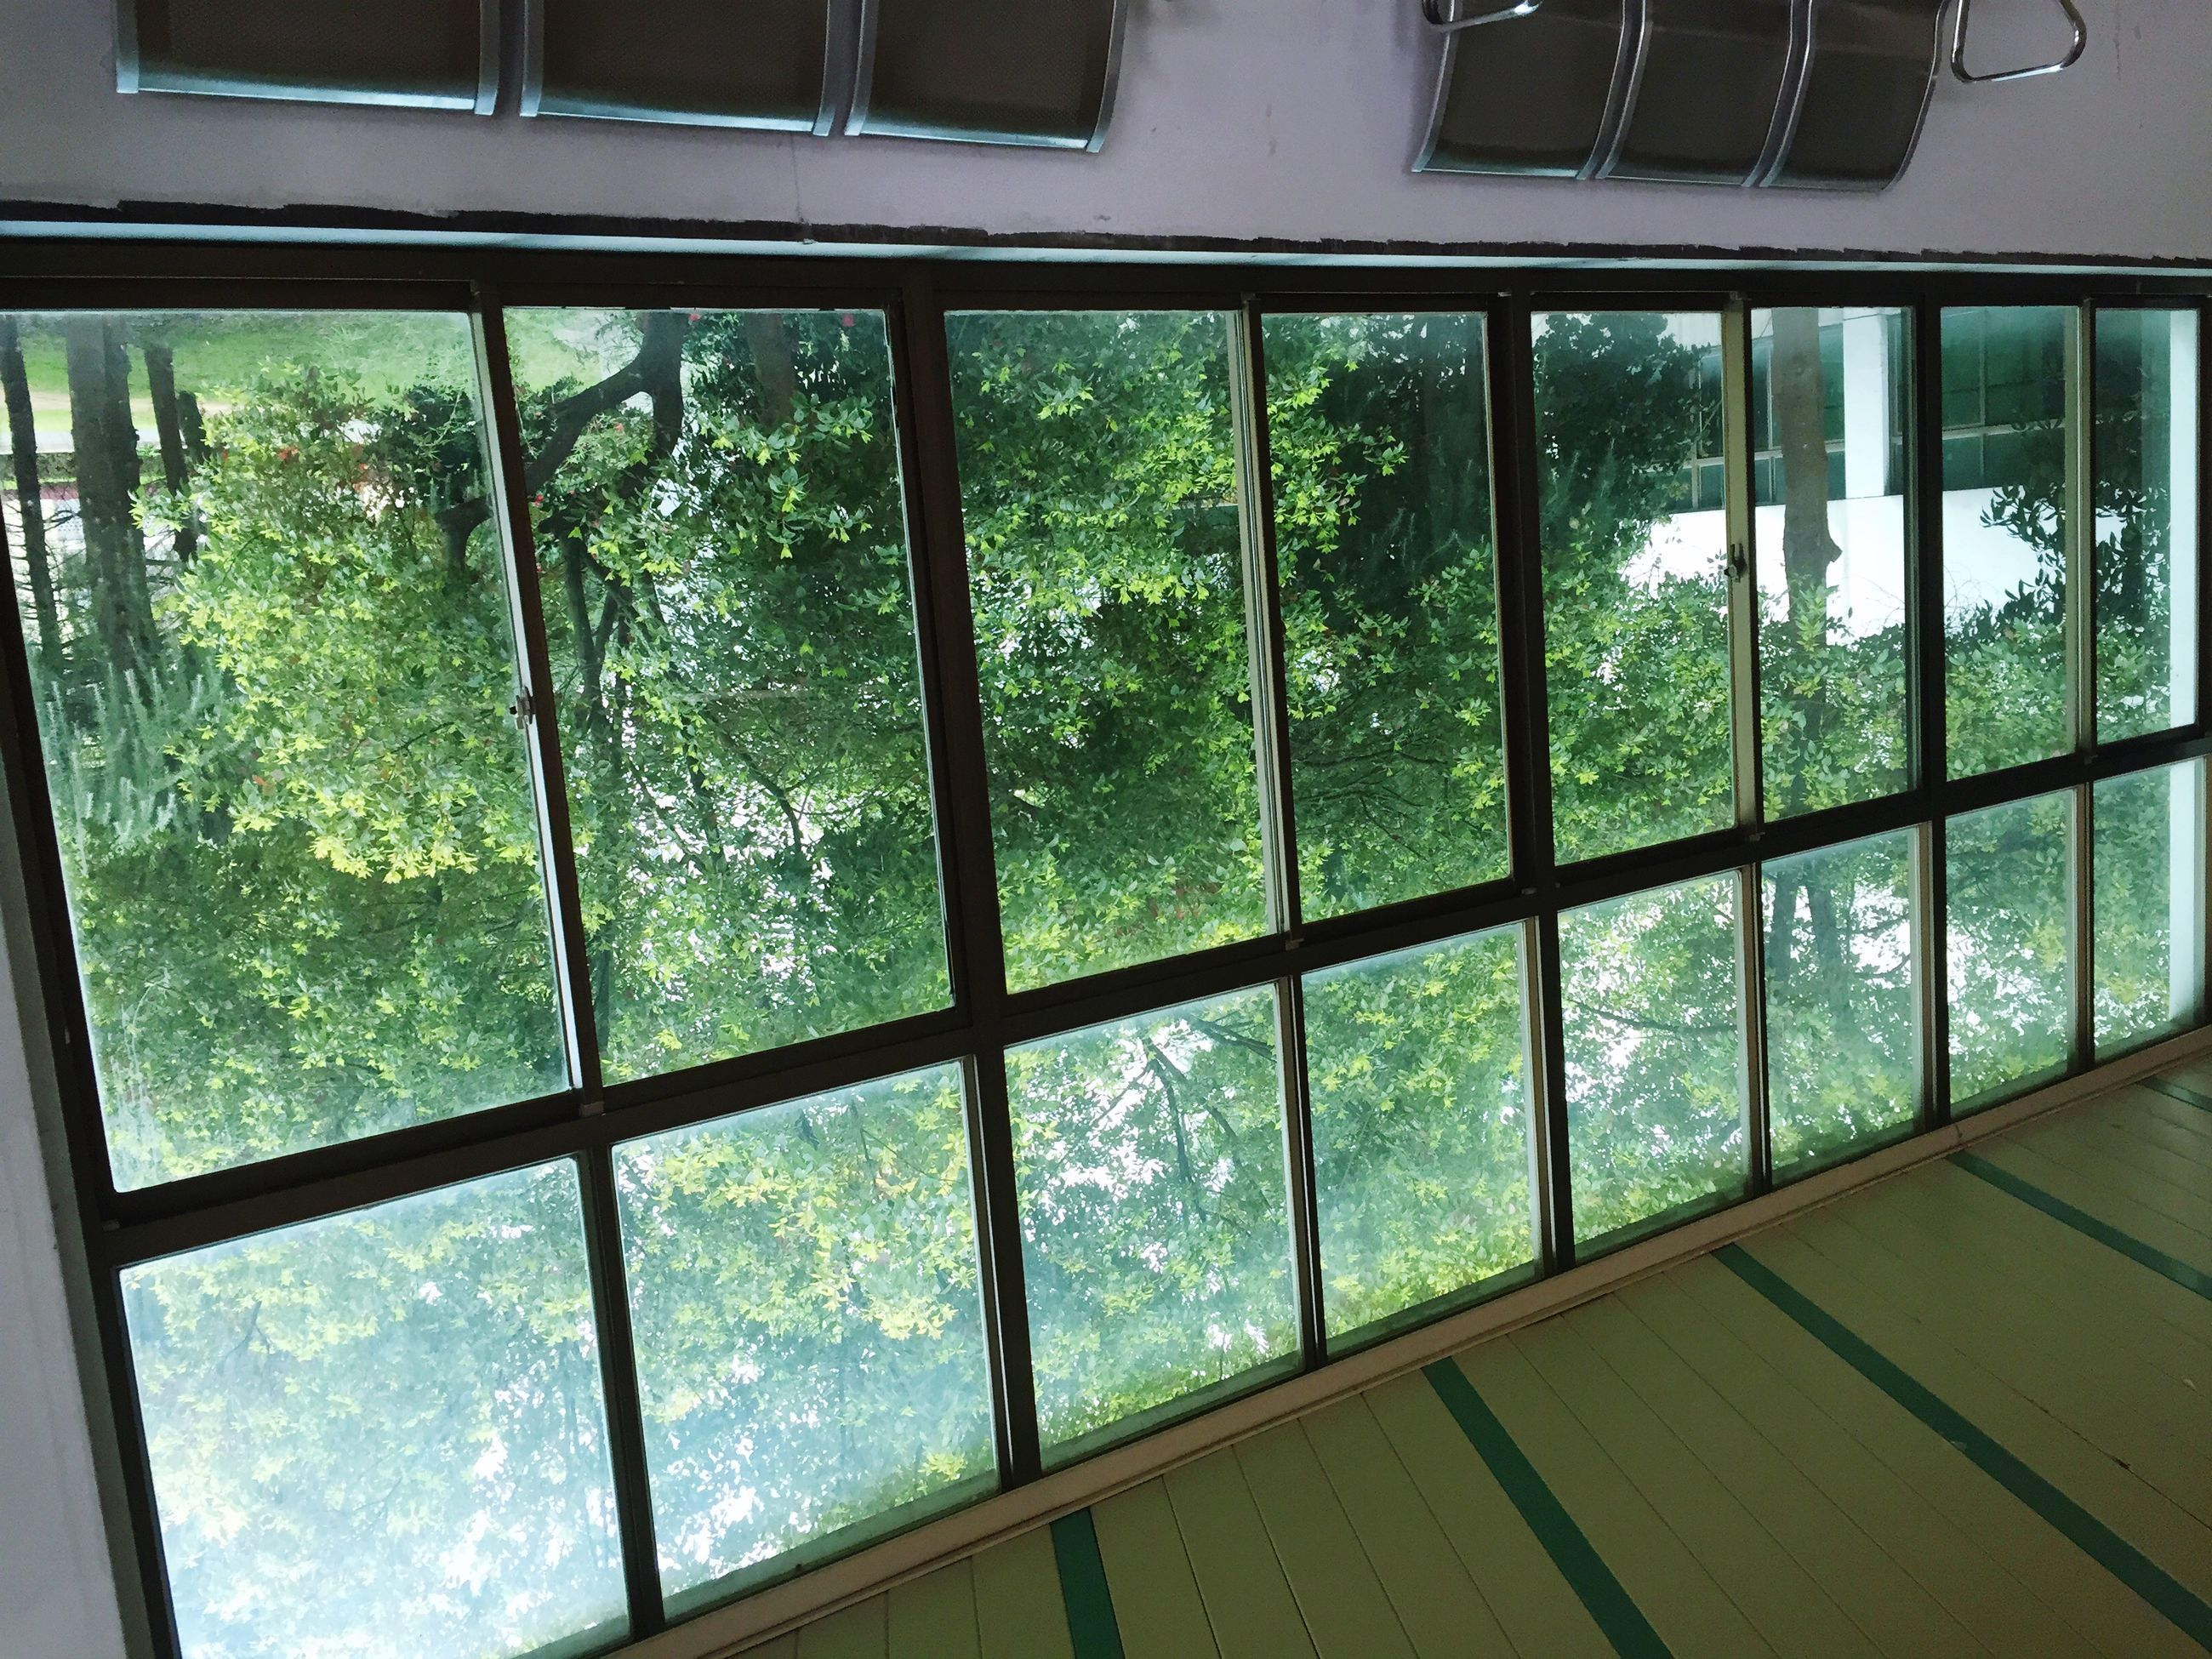 window, glass - material, indoors, transparent, architecture, built structure, tree, green color, building exterior, day, reflection, growth, no people, plant, house, sunlight, glass, railing, water, pattern